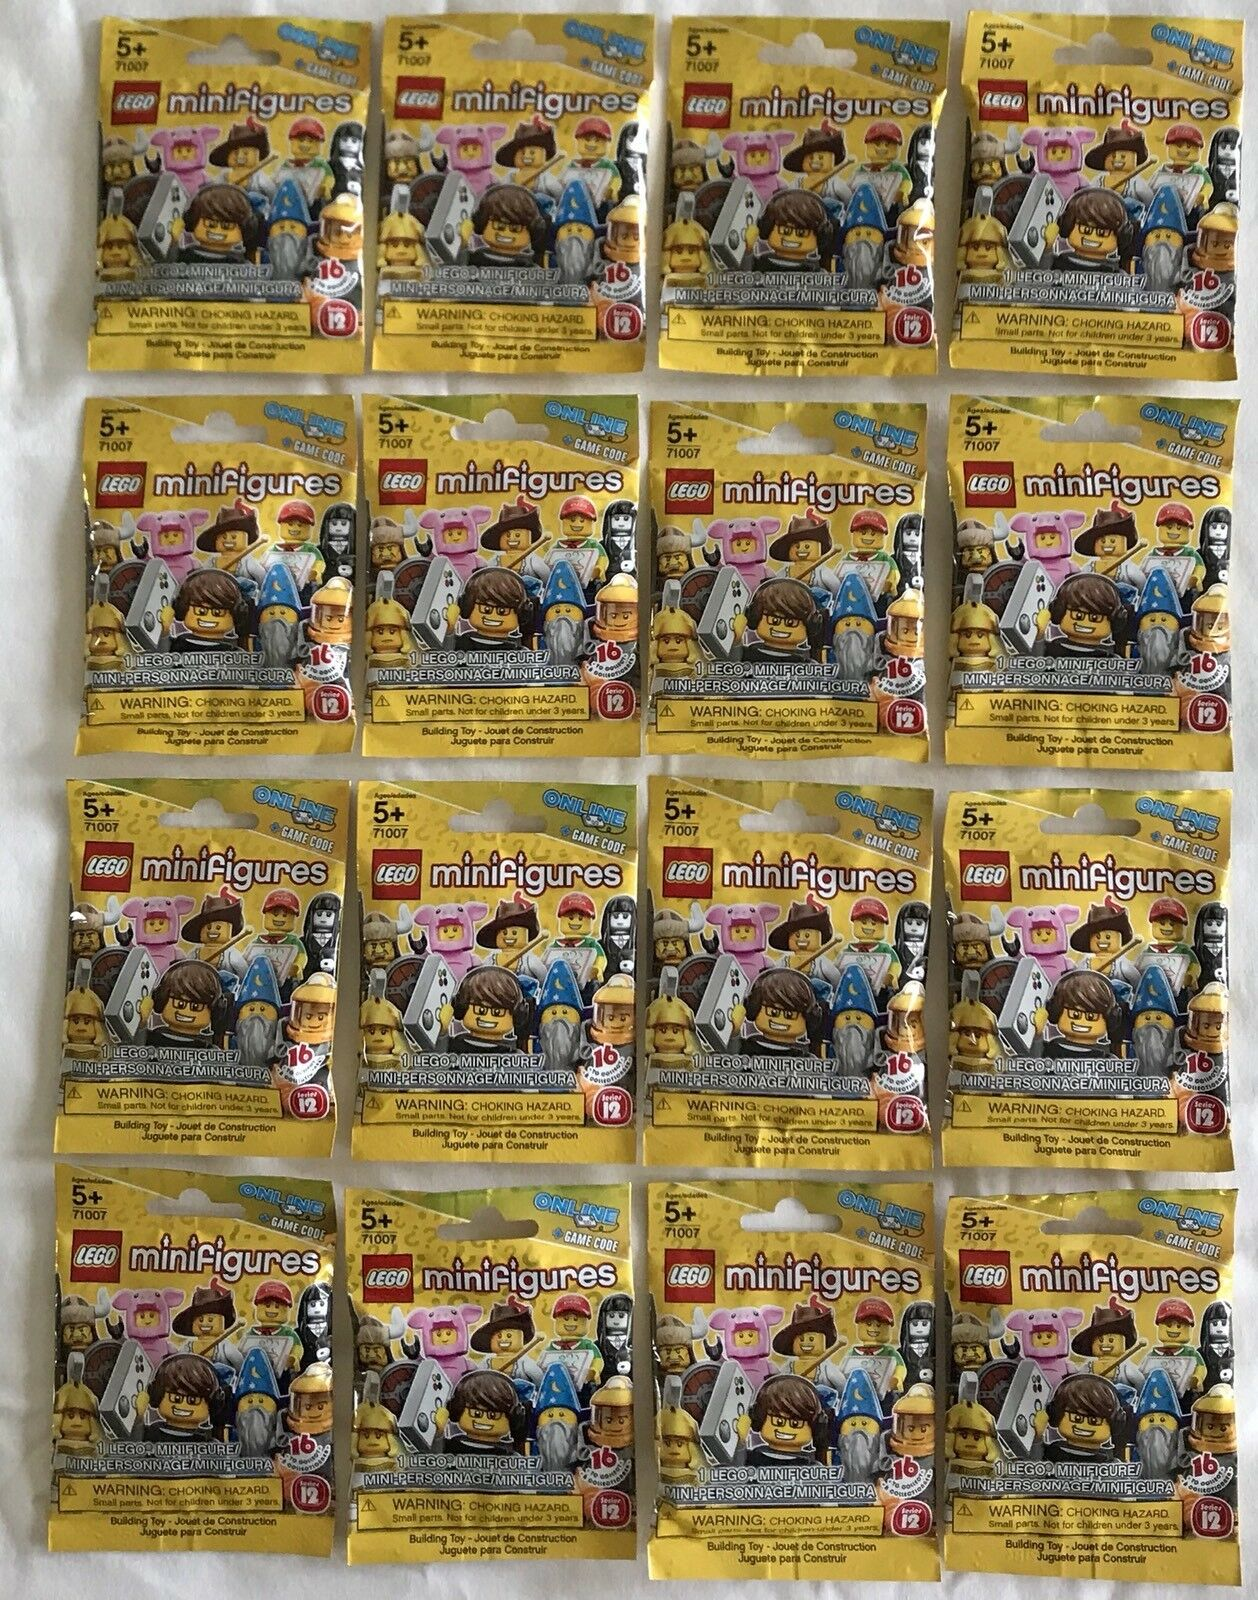 LEGO Minifigures (71007) - Série 12-Jeu complet de 16 figurines-New & Sealed